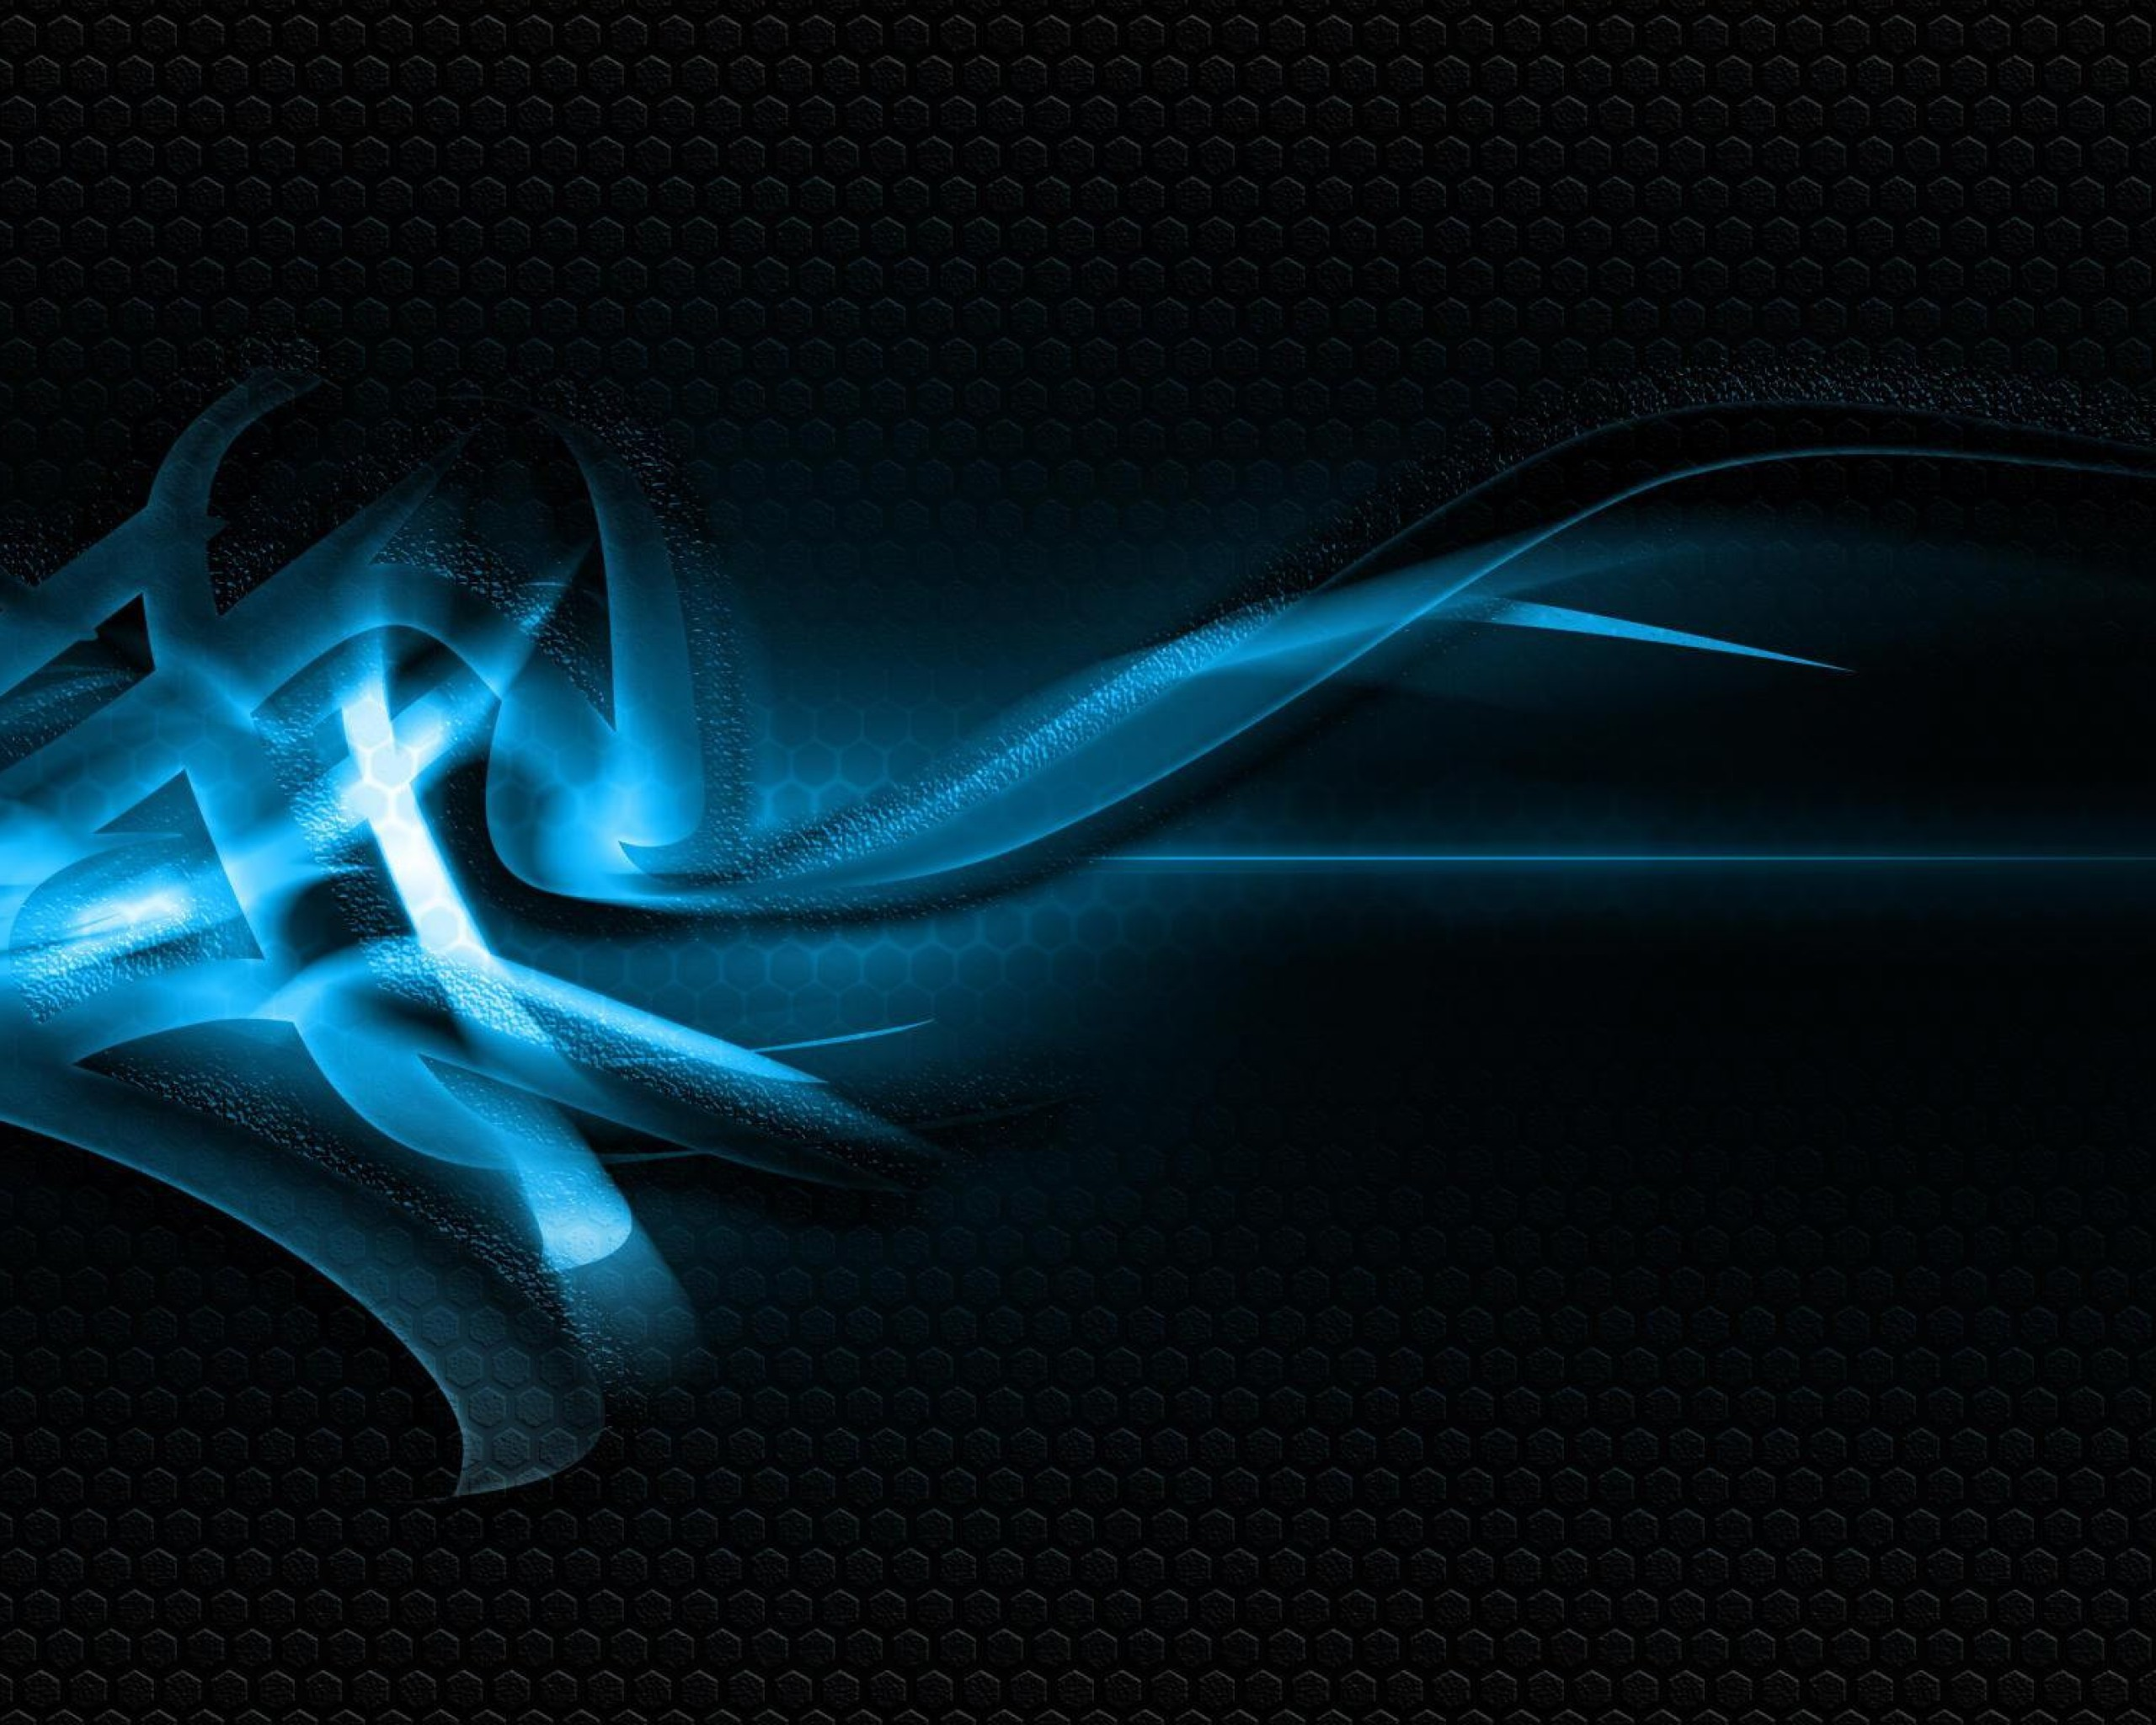 Black And Blue Abstract Wallpaper 7 Background